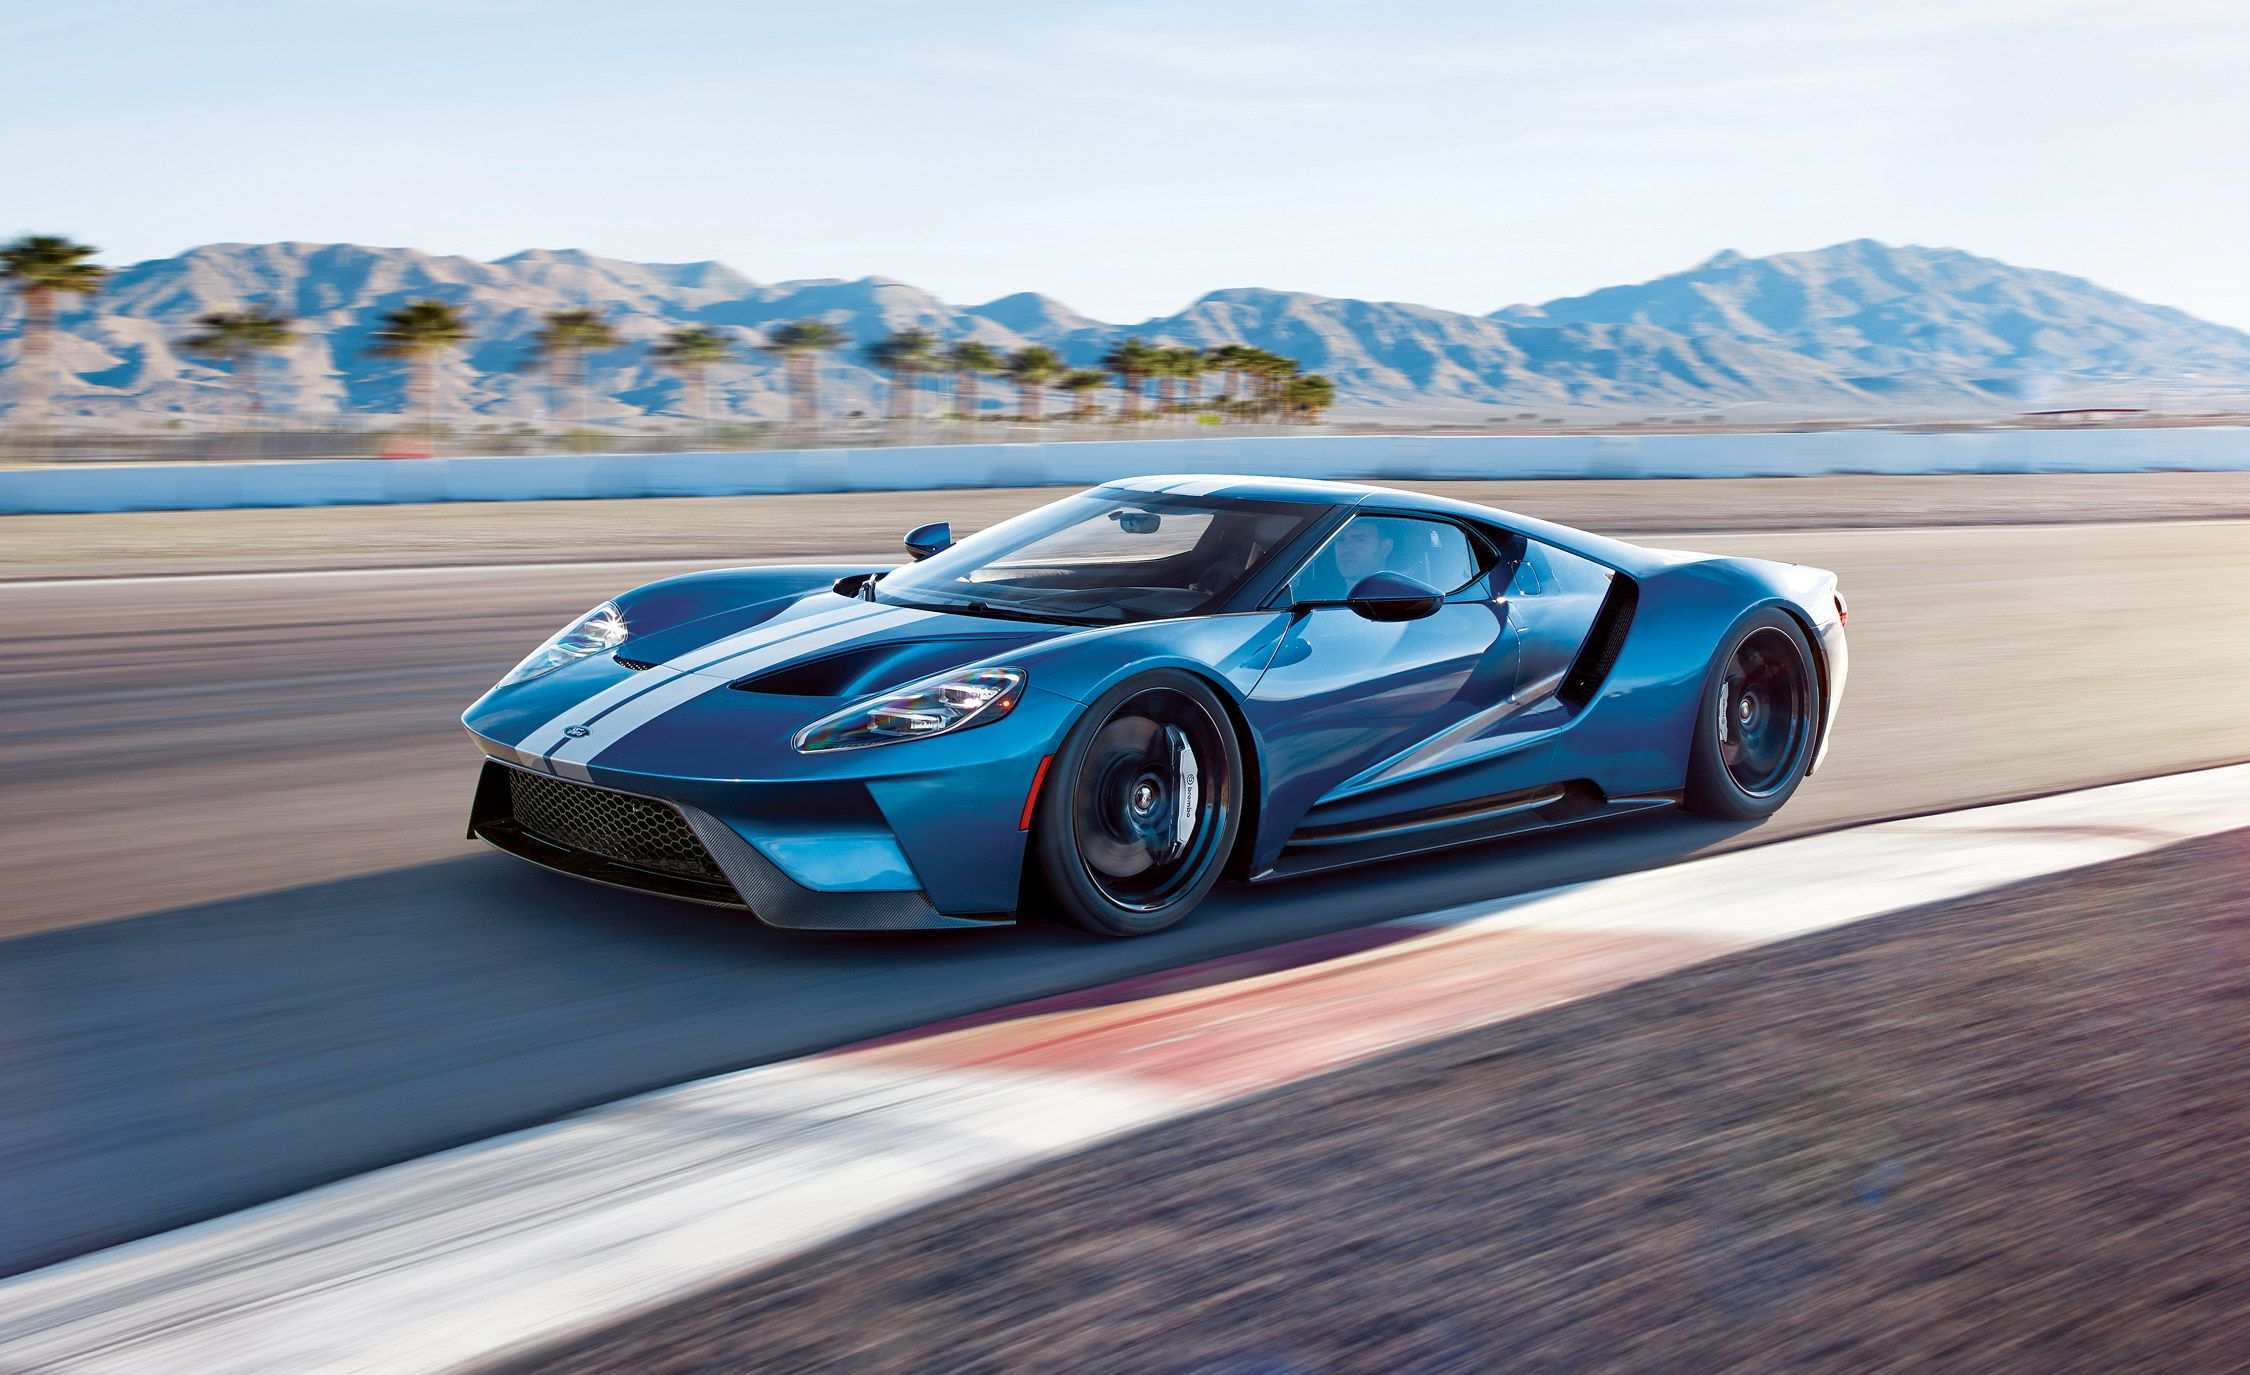 73 New 2019 Ford Gt Configurations for 2019 Ford Gt